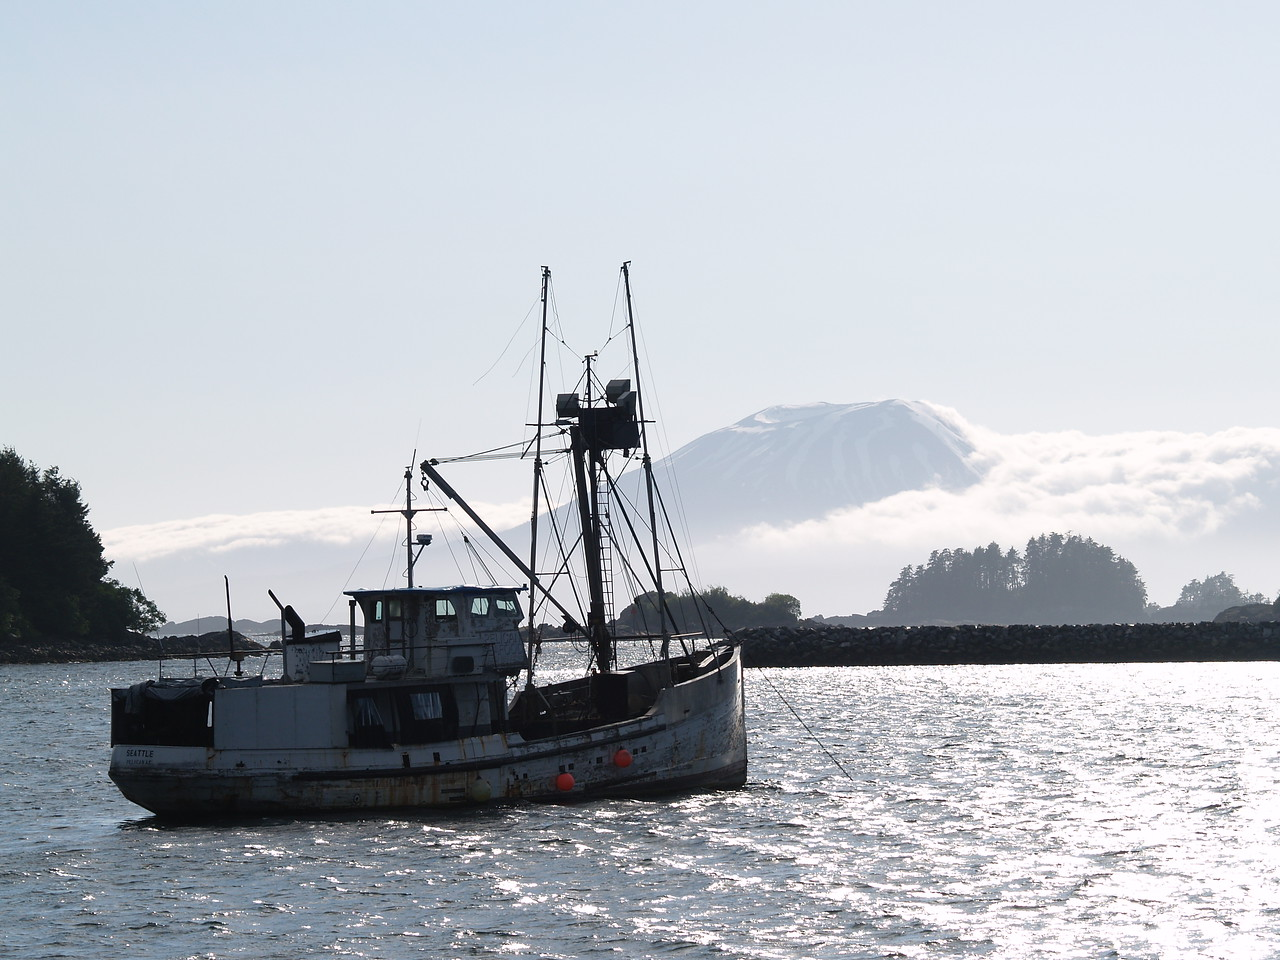 """The Alaska Arts Council was holding their annual meeting in Sitka while I was there. They sponsored an """"arts cruise"""" hosted by Alaska's writer laureate John Straley. He writes murder mysteries and lives in Sitka. I've read and own some of his books. We came across this old trawler anchored with Mt. Edgecumbe in the background. It was a beautiful, clear late June day."""